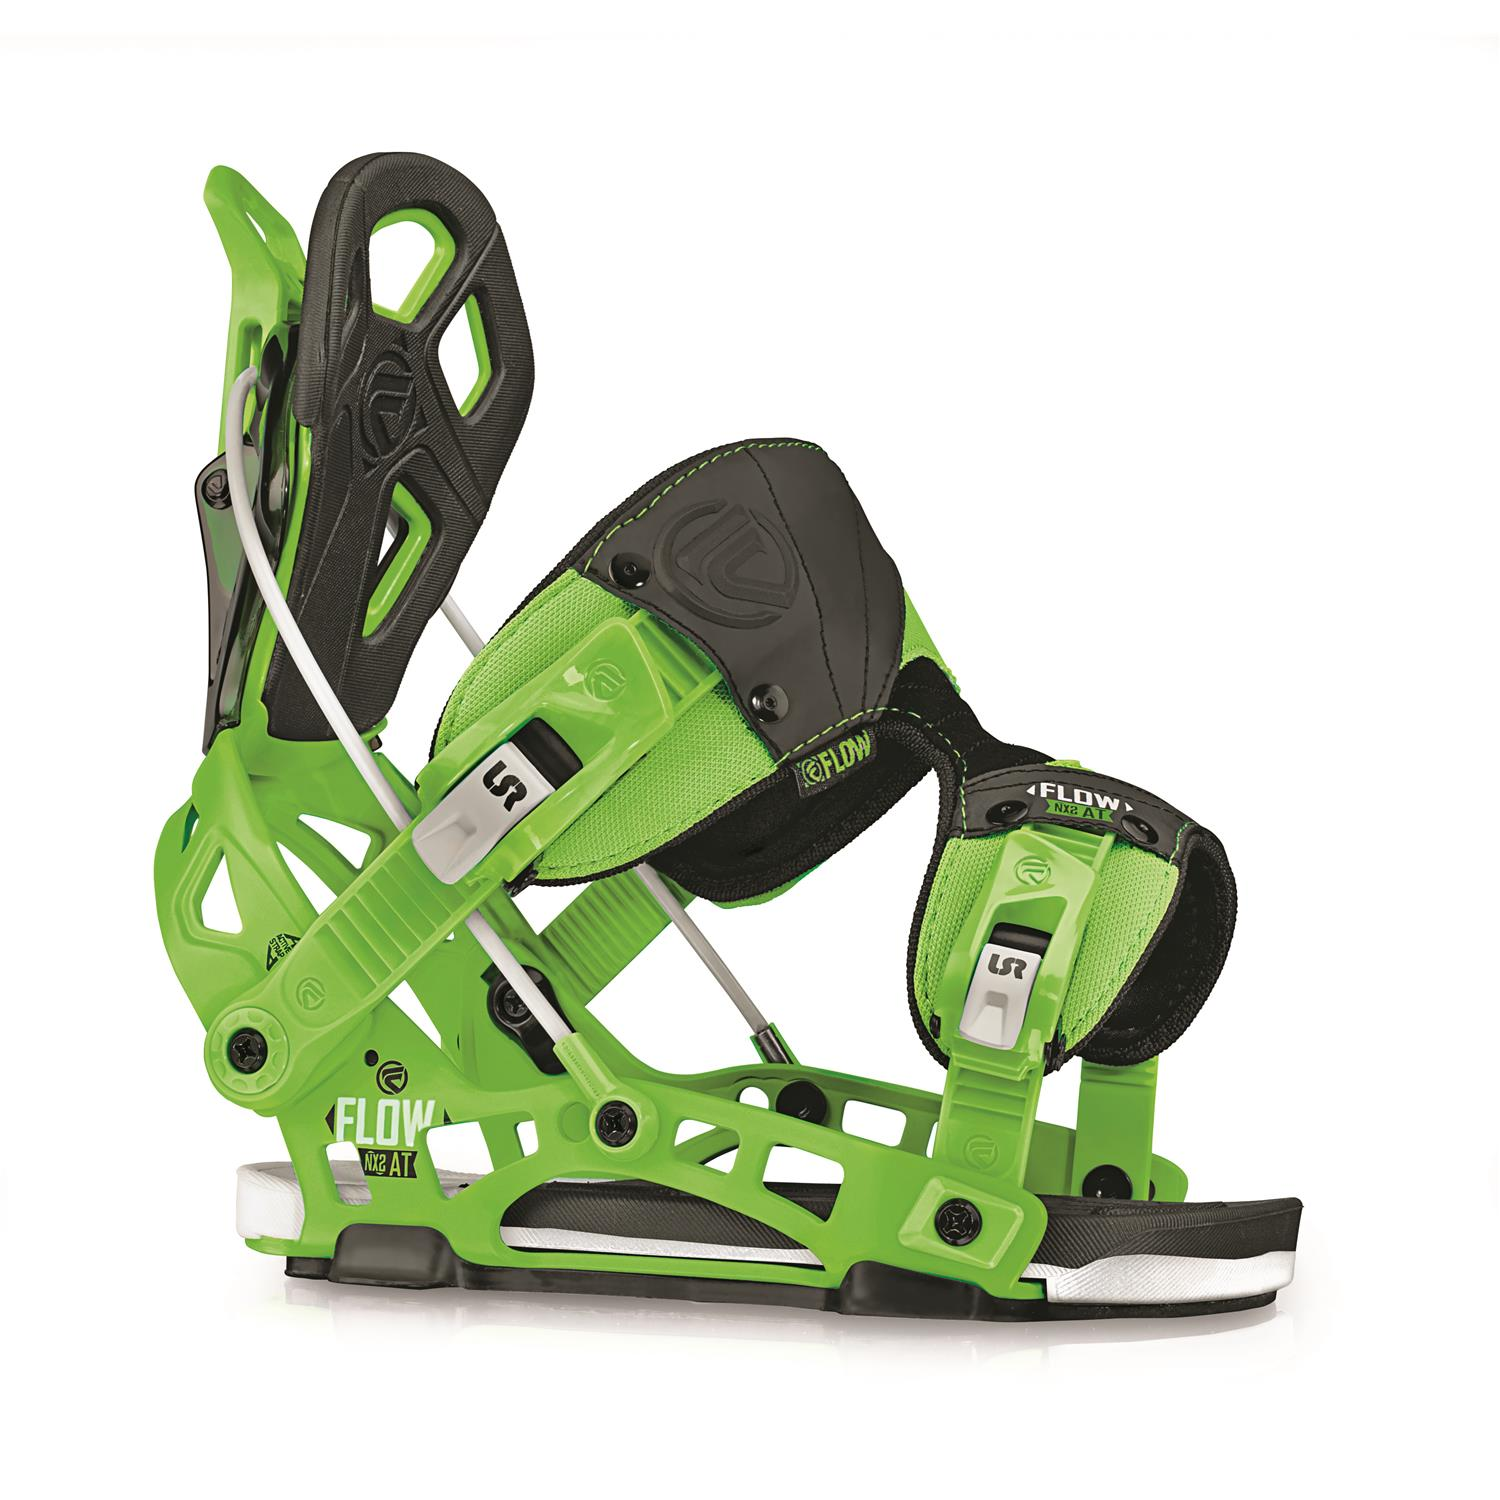 K2 Slayblade Snowboard + Flow NX2-AT Snowboard Bindings